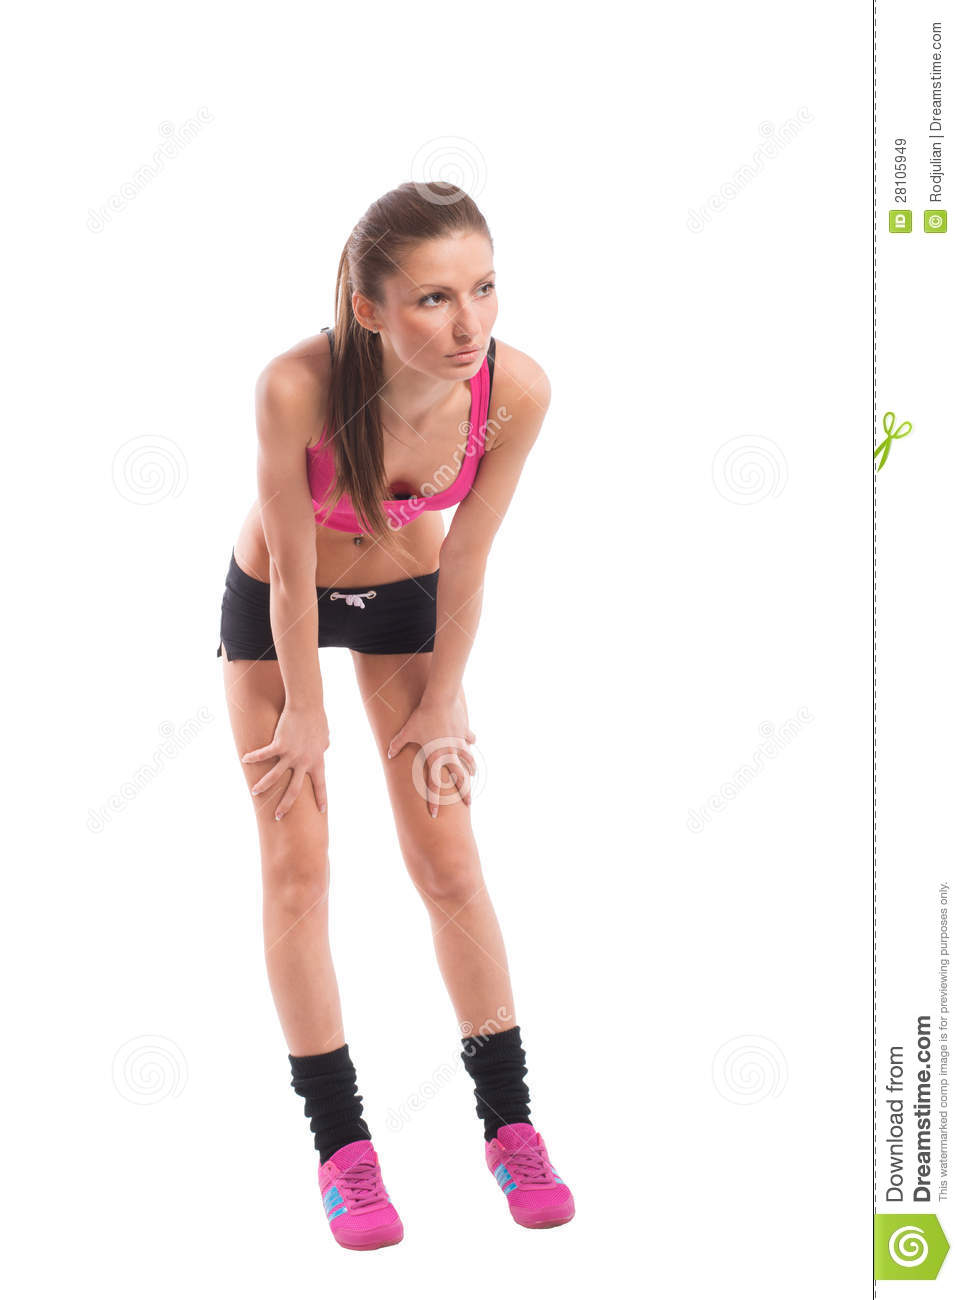 Tired fit girl, on white background